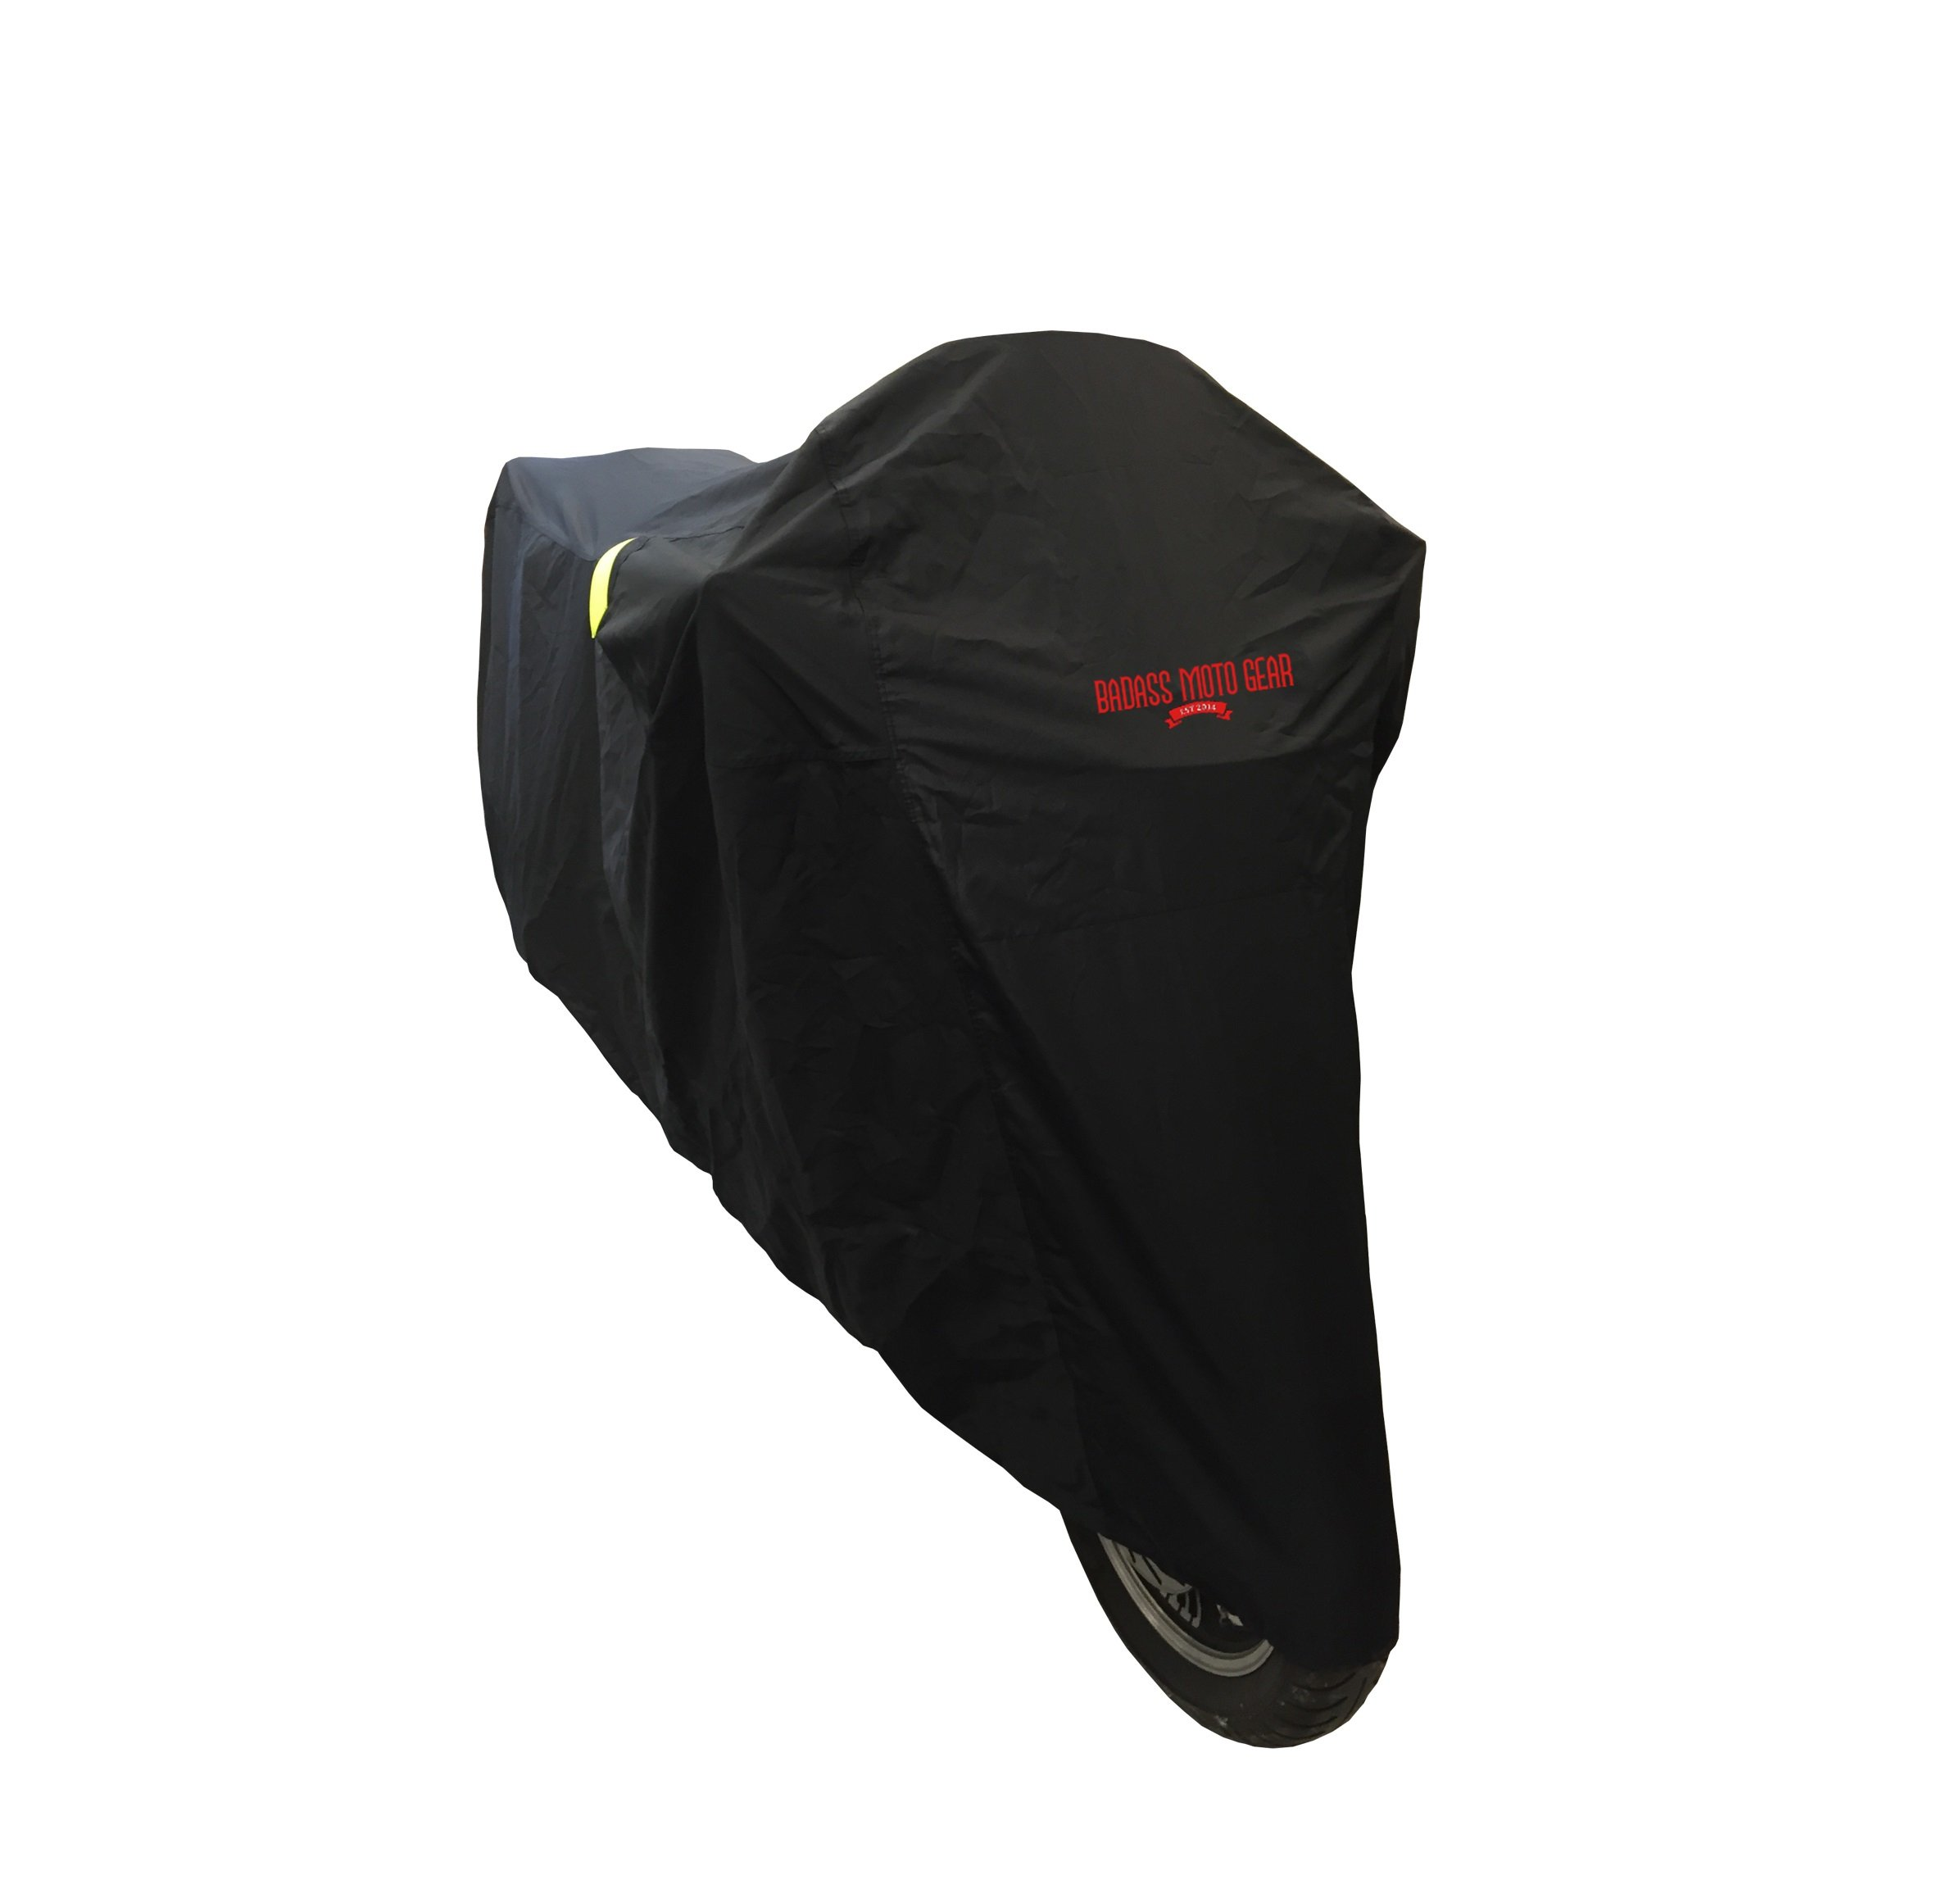 Badass Moto Gear Ultimate Waterproof Motorcycle Cover. Heavy Duty, Night Reflective, Windshield Liner, Heat Shield, Vents, Lock Pocket, Taped Seams (108'' Full Dressers, Goldwing, Tourers) EXTRA LARGE by Badass Motogear